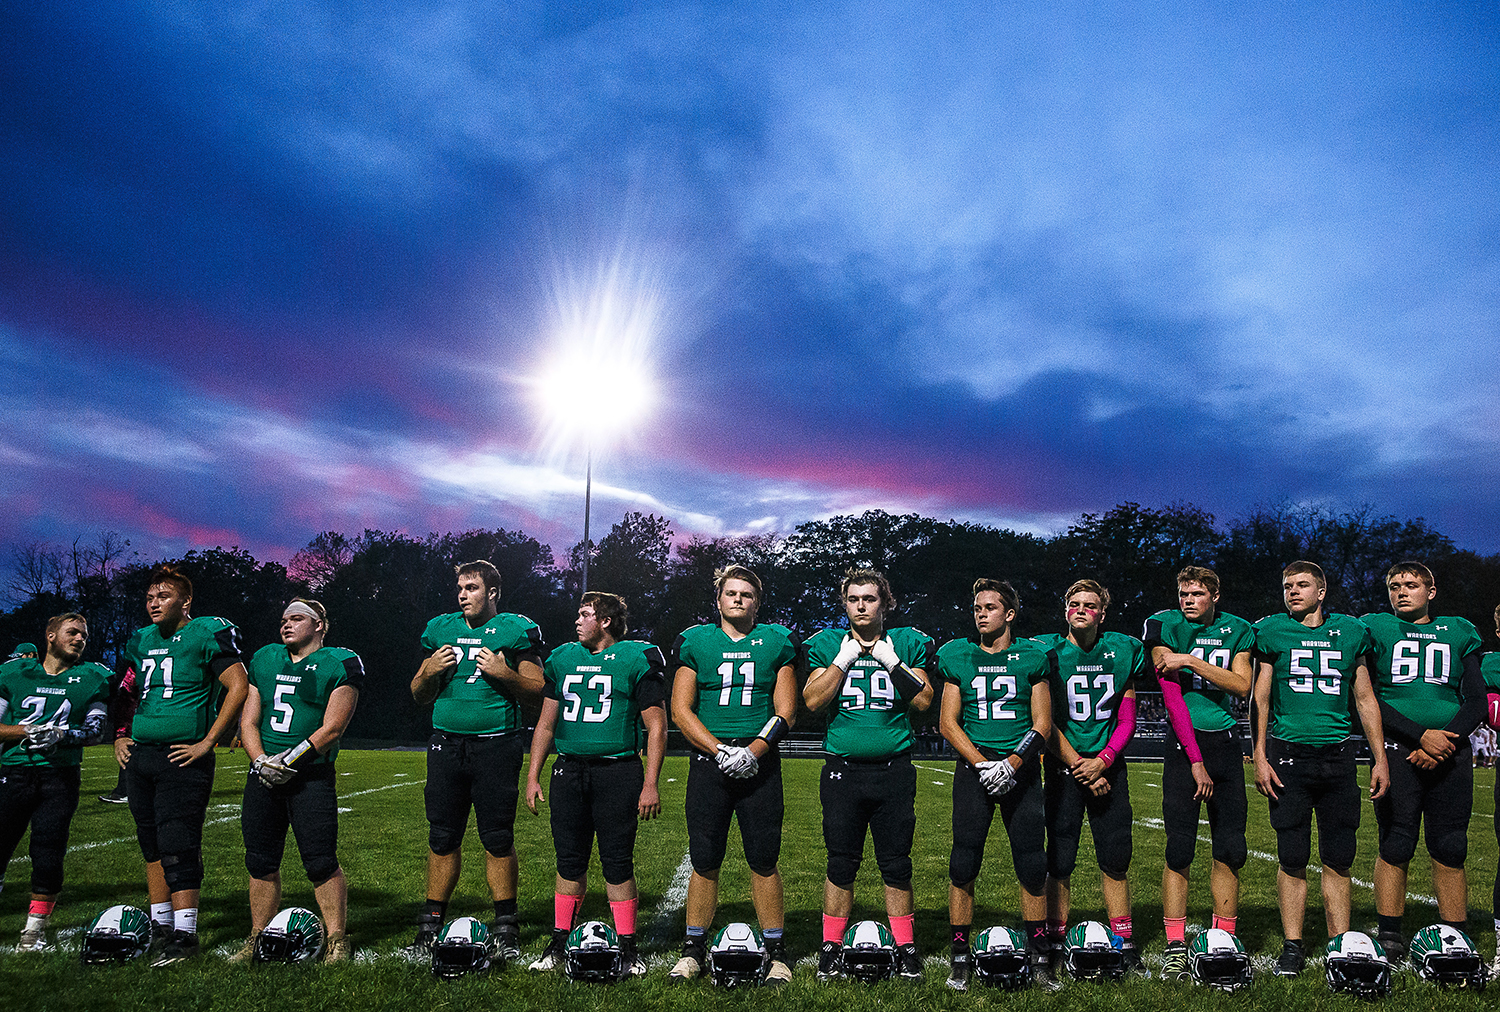 The Athens Warriors line up to honor their seniors prior to taking on Williamsville Oct. 20 at Athens High School. Justin L. Fowler/The State Journal-Register